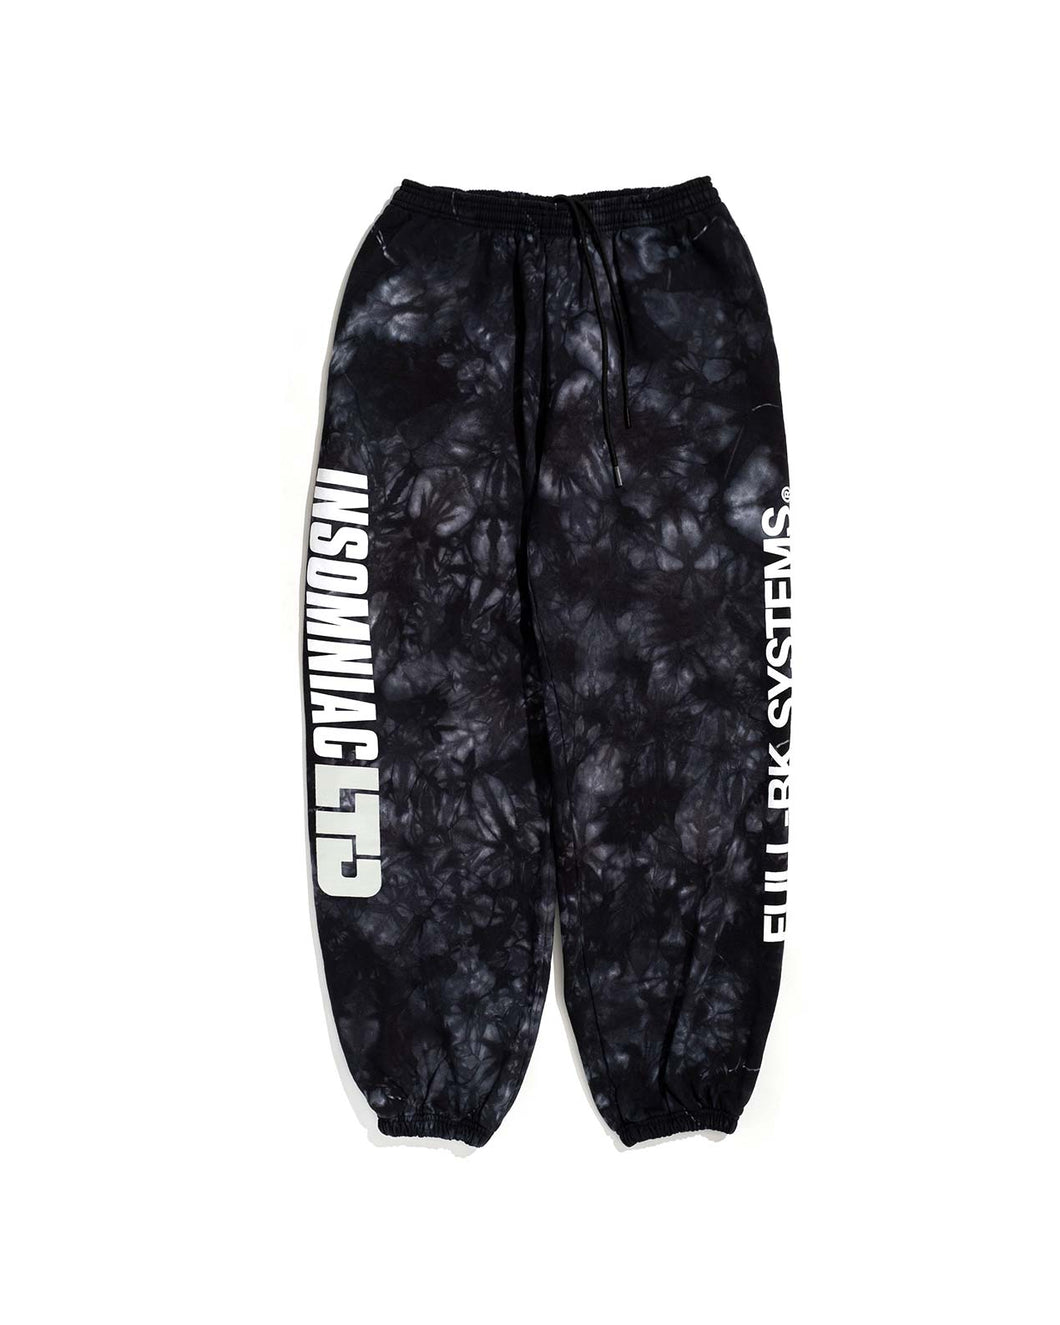 Full BK Tie Dye Sweatpants